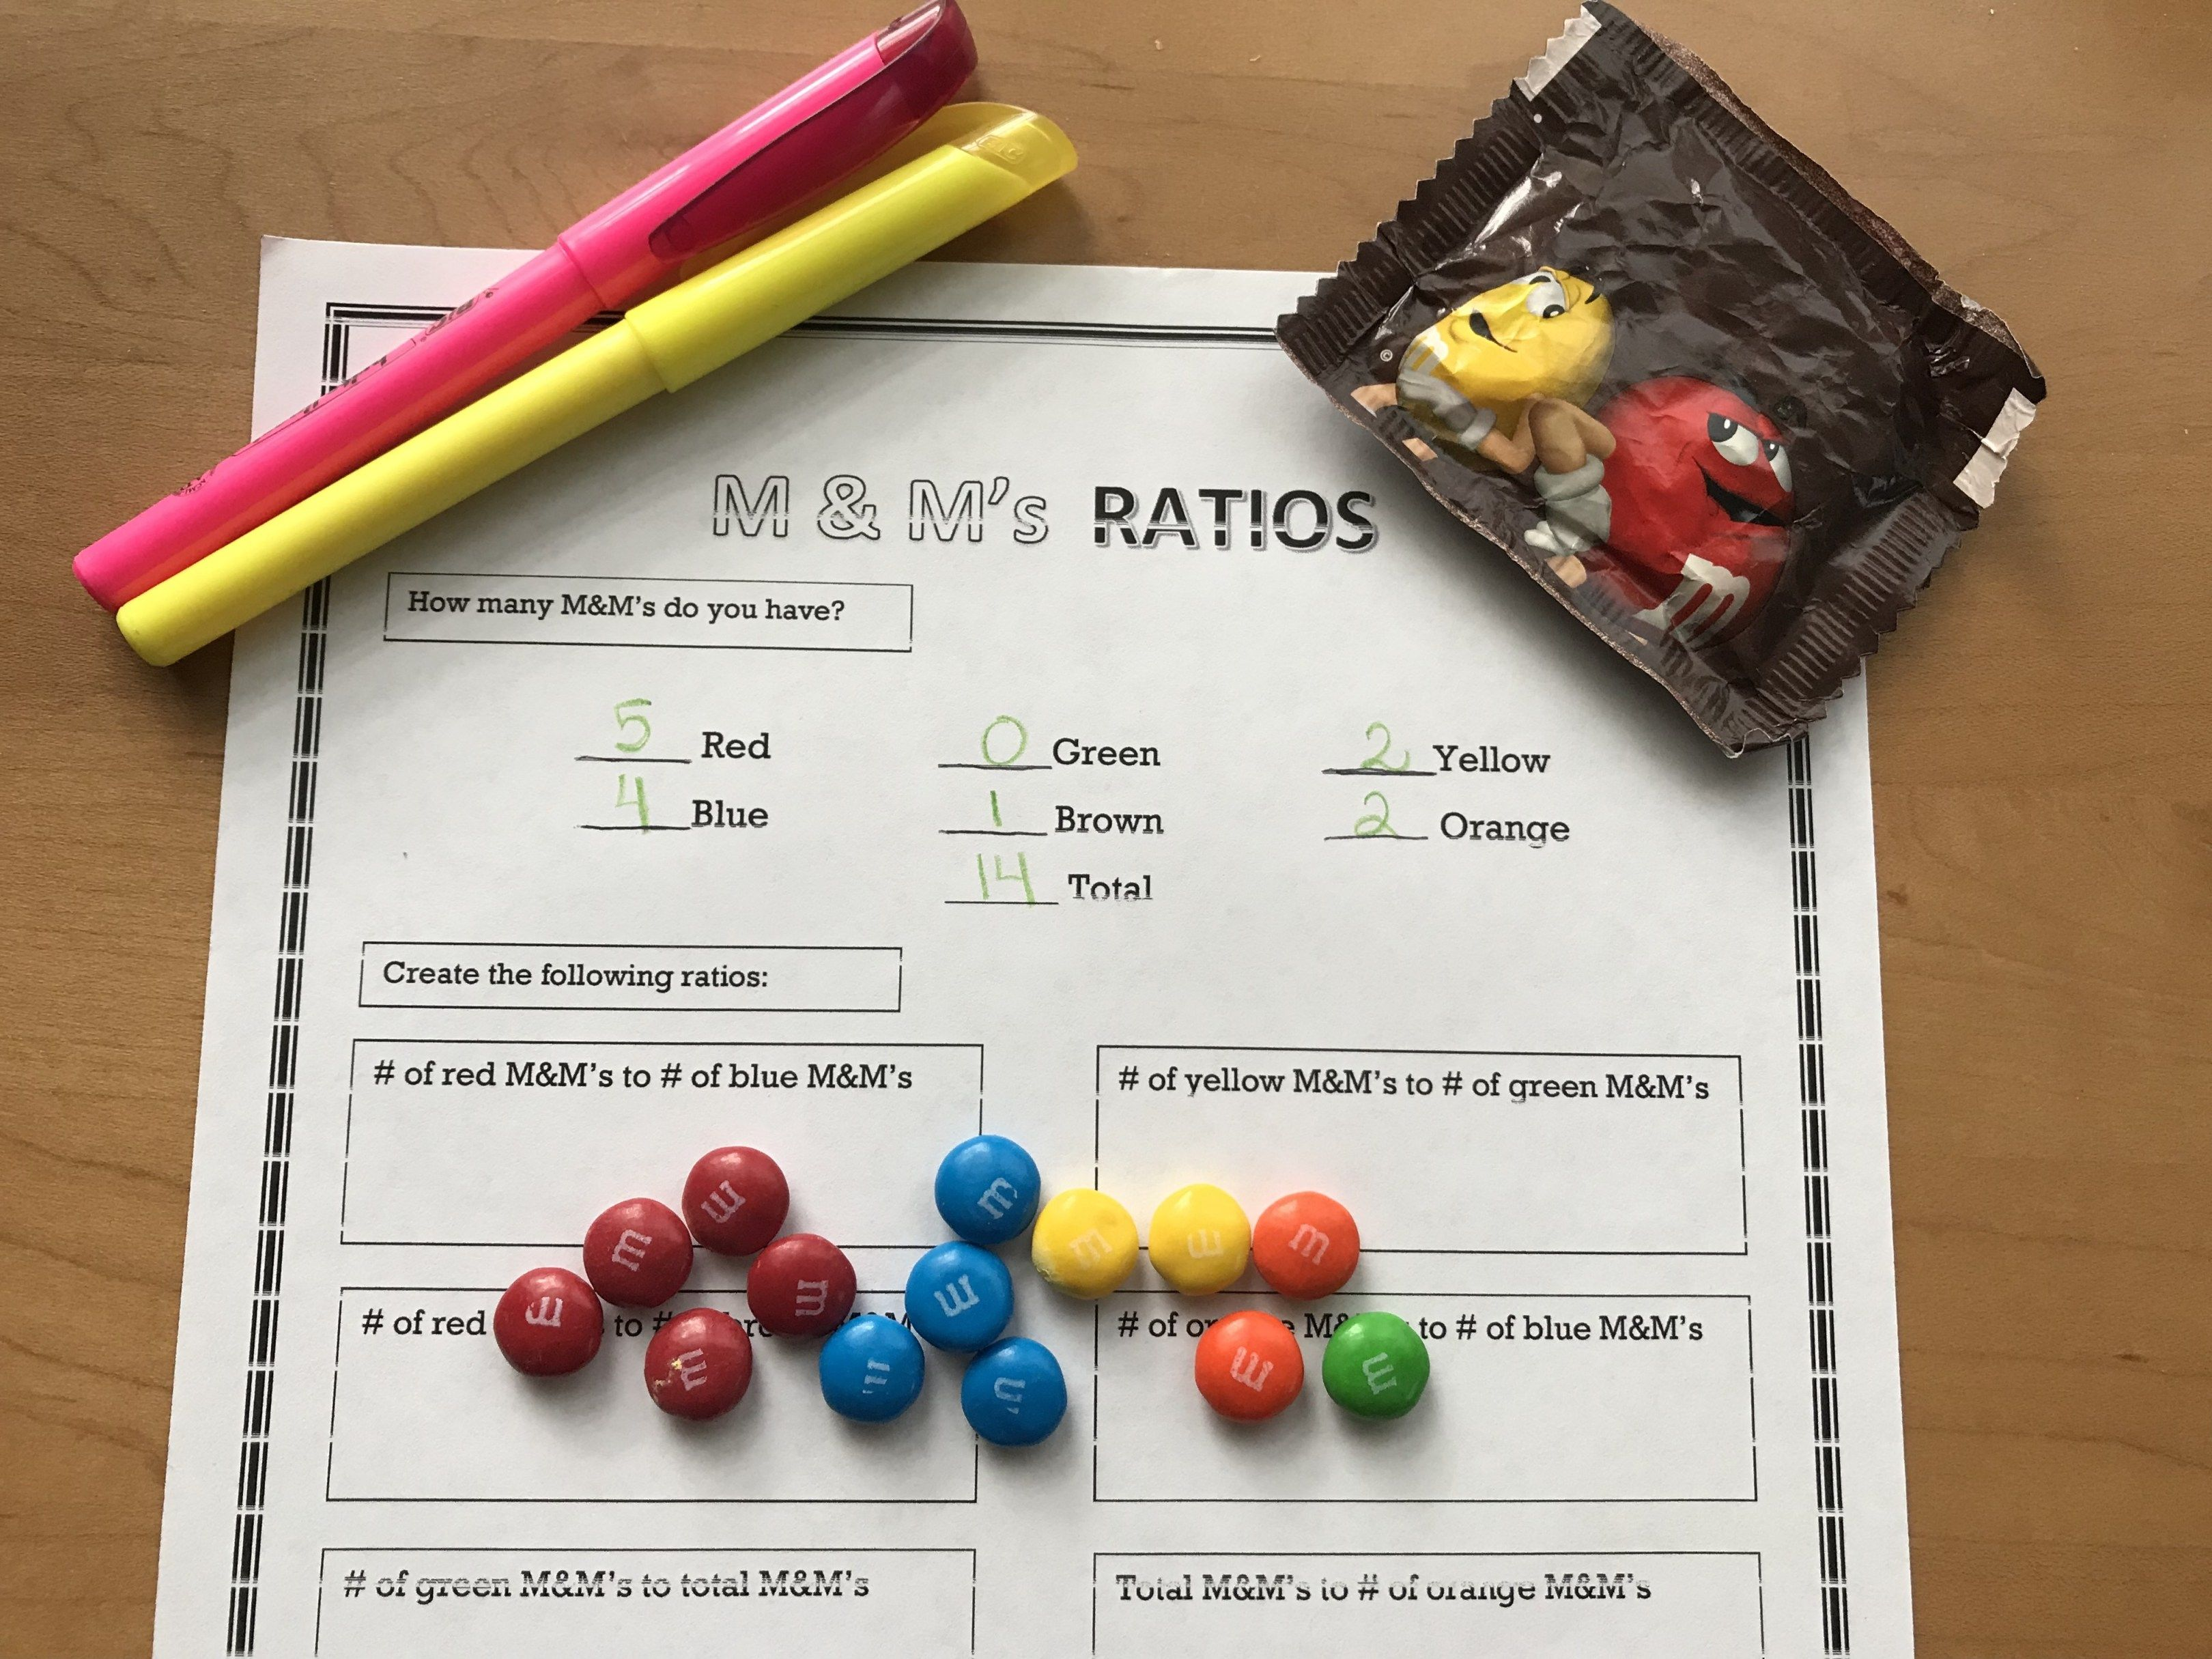 Rates And Ratios Prealgebra Worksheet Activity For Ratios